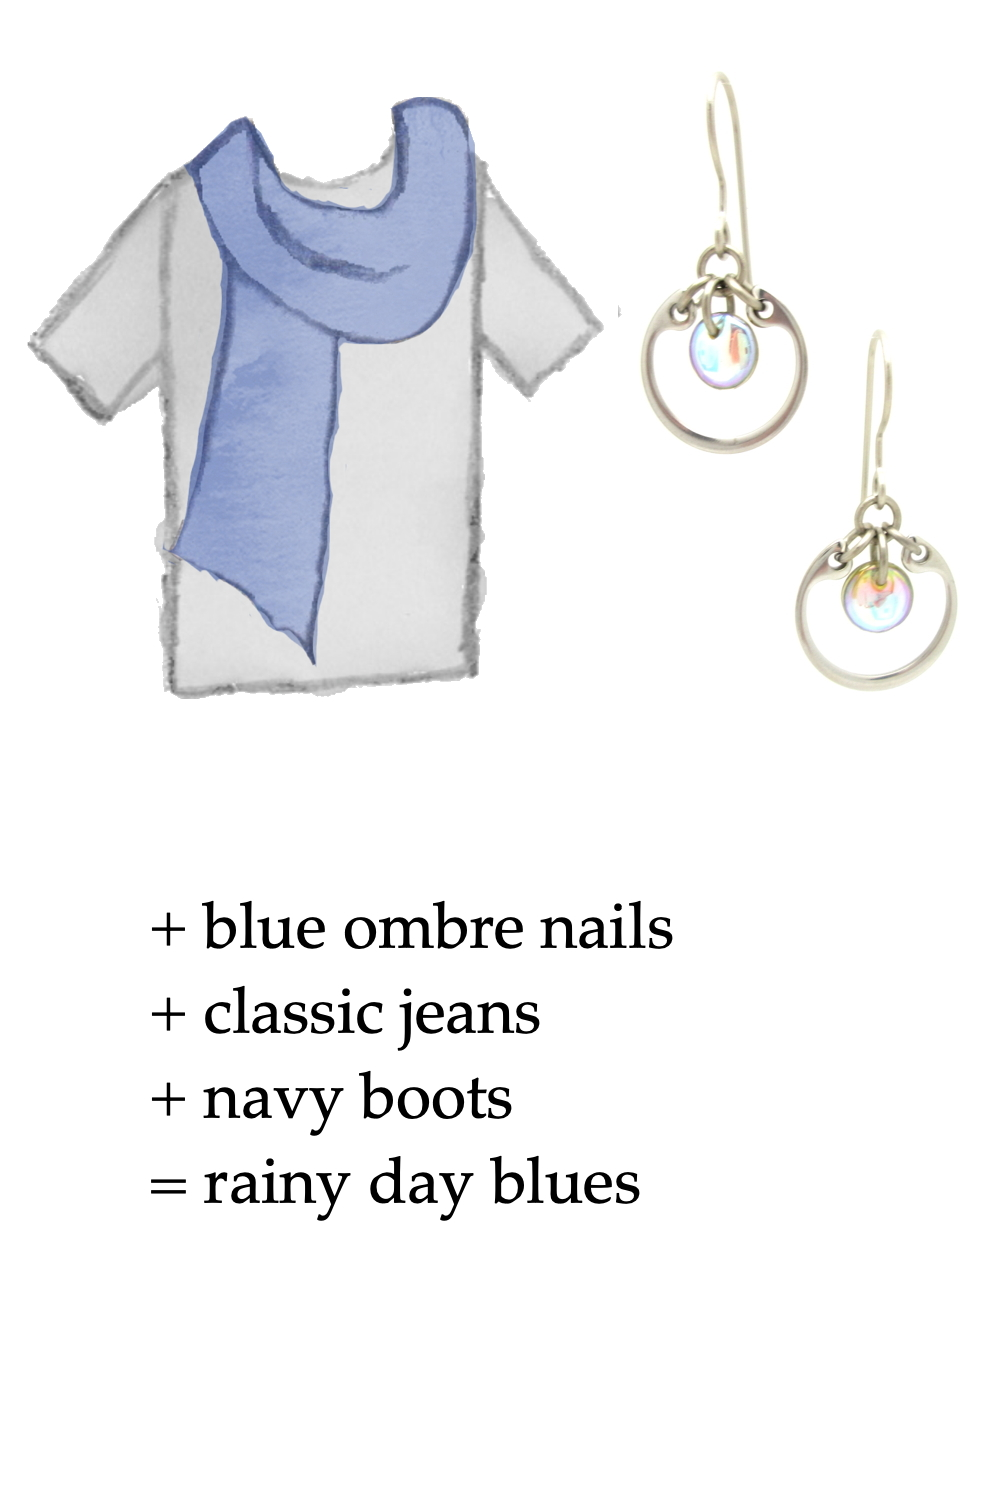 outfit inspo style sketch of a gray tee shirt and blue scarf with Wraptillion's small modern circle silver-toned earrings in pale rainbow; text on image reads: + blue ombre nails + classic jeans + navy boots = rainy day blues